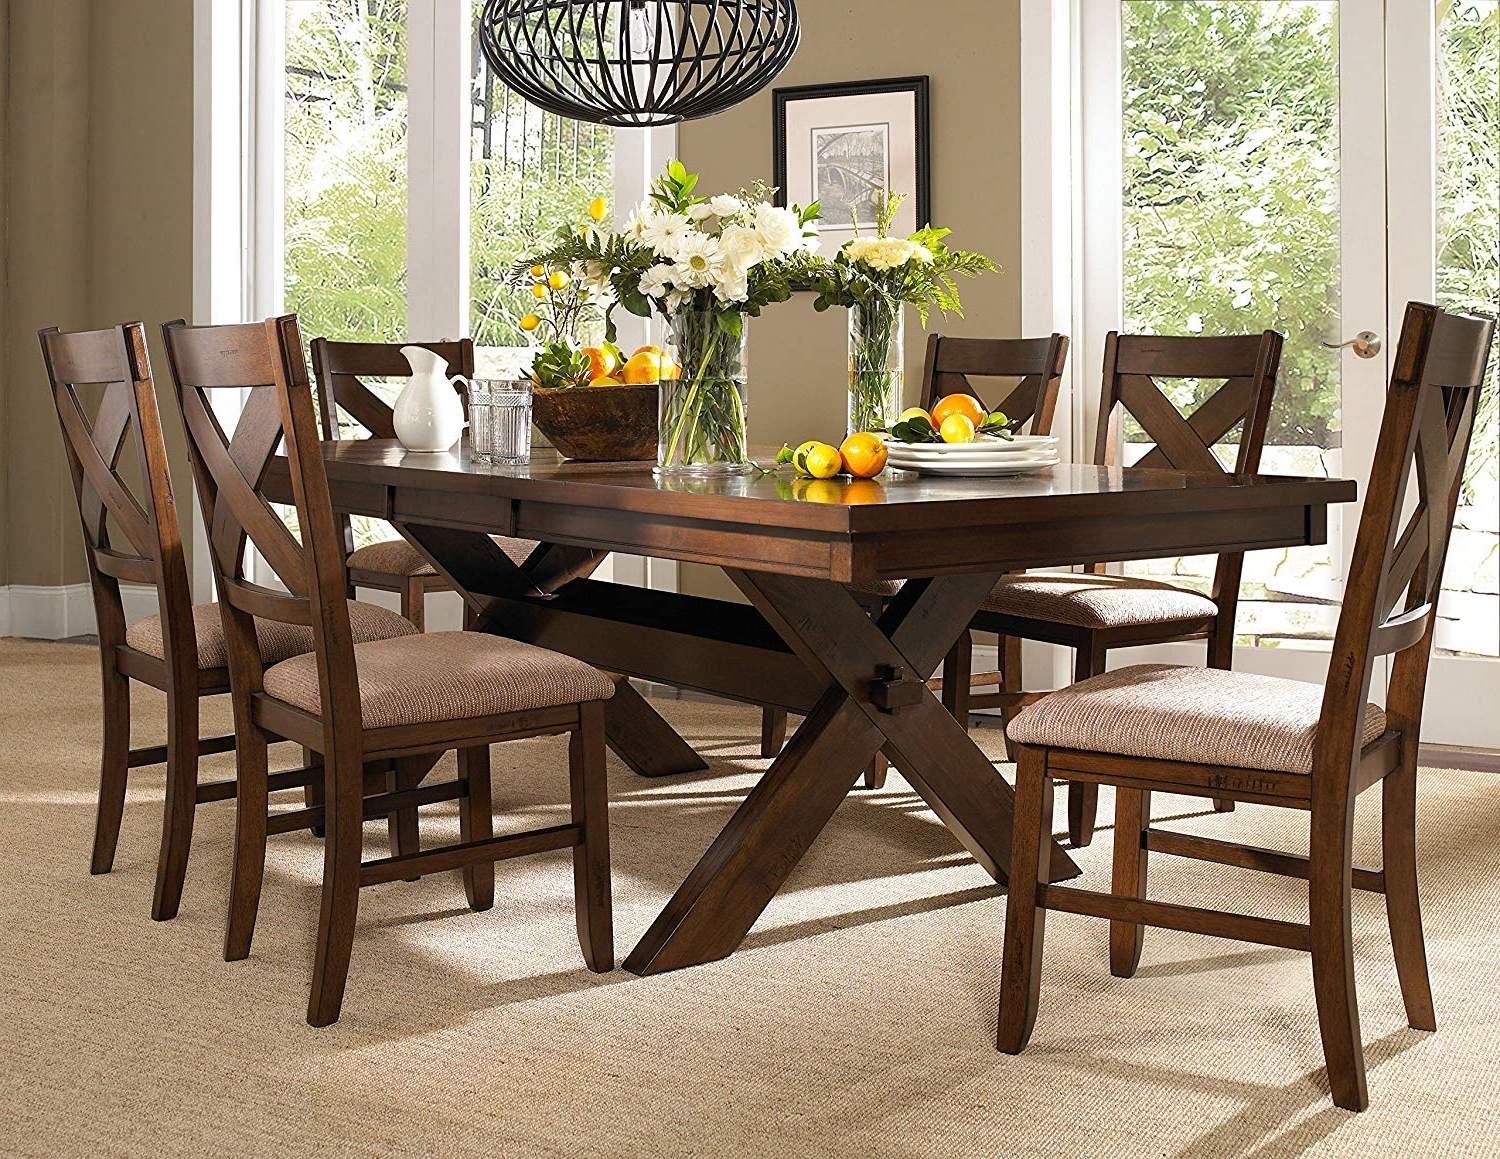 Newest Amazon – Powell 713 417M2 7 Piece Wooden Kraven Dining Set With Wood Dining Tables And 6 Chairs (View 12 of 25)